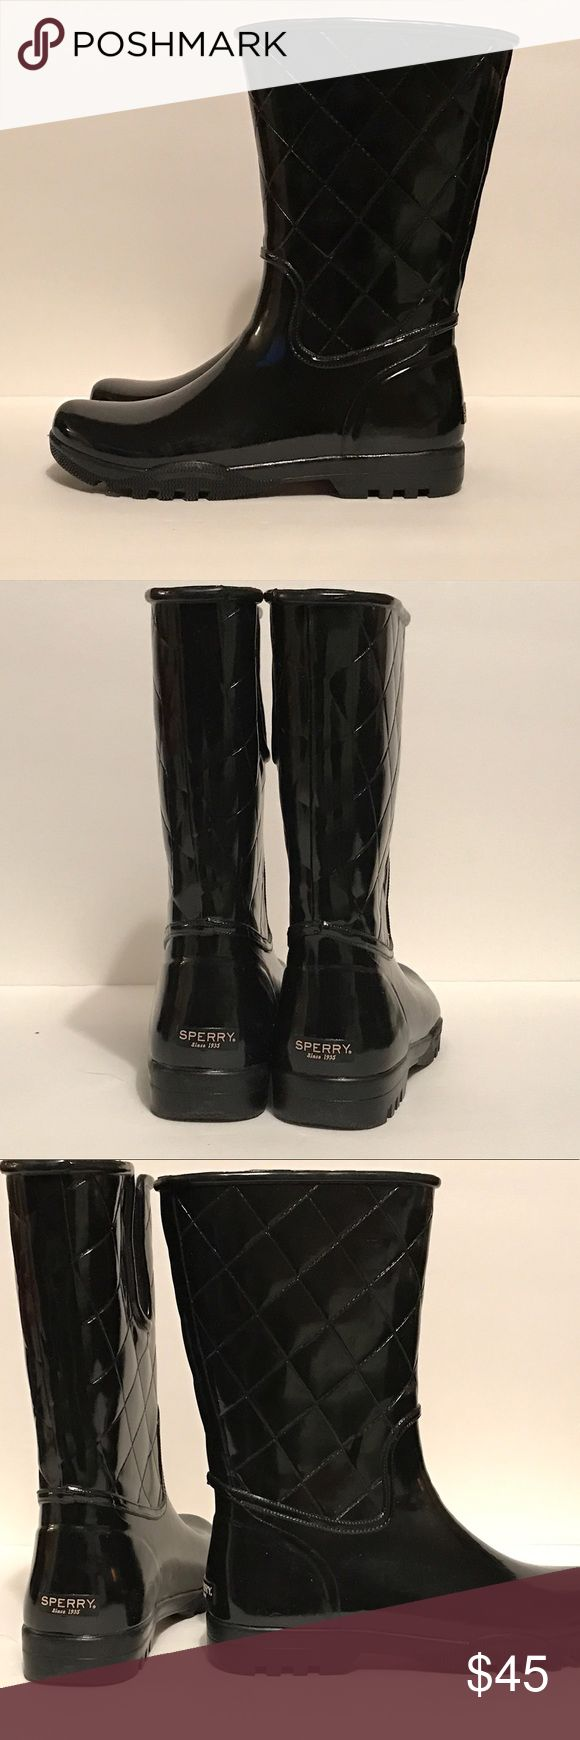 """Sperry Top Sider Black Quilted Rainboots ☔️ Black Quilted Rubber Rainboots ☔️  Make a big splash in the chic Sperry Top-Sider rain boots. Waterproof rubber upper // Inner elastic gore // 11"""" shaft Fabric lining // cushioned insole Rubber// traction outsole Sperry Top-Sider Shoes"""